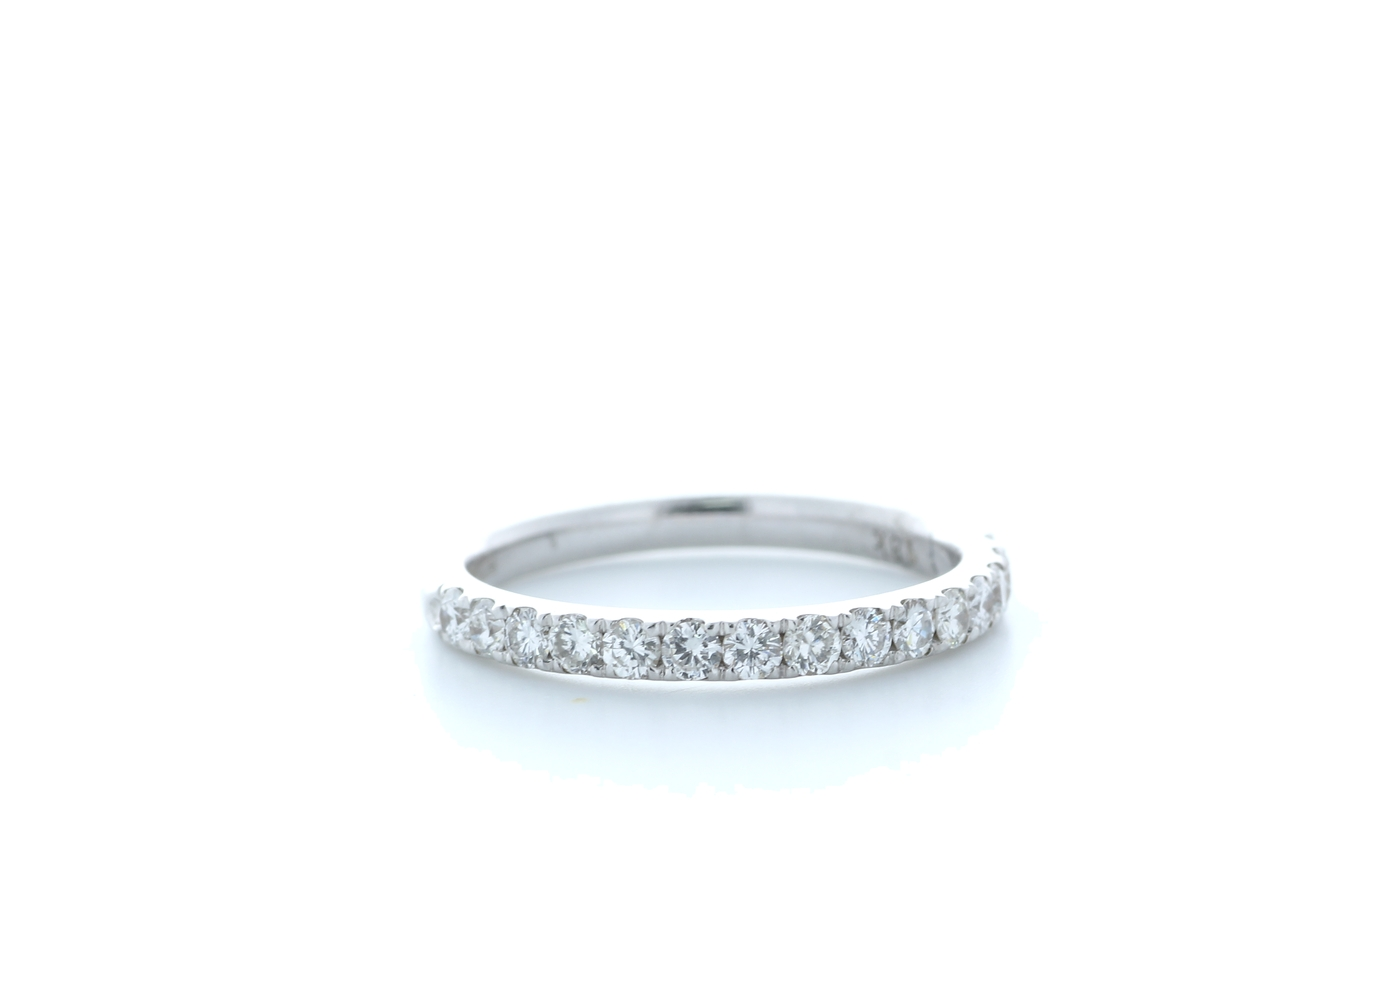 18ct White Gold Claw Set Semi Eternity Diamond Ring 0.44 Carats